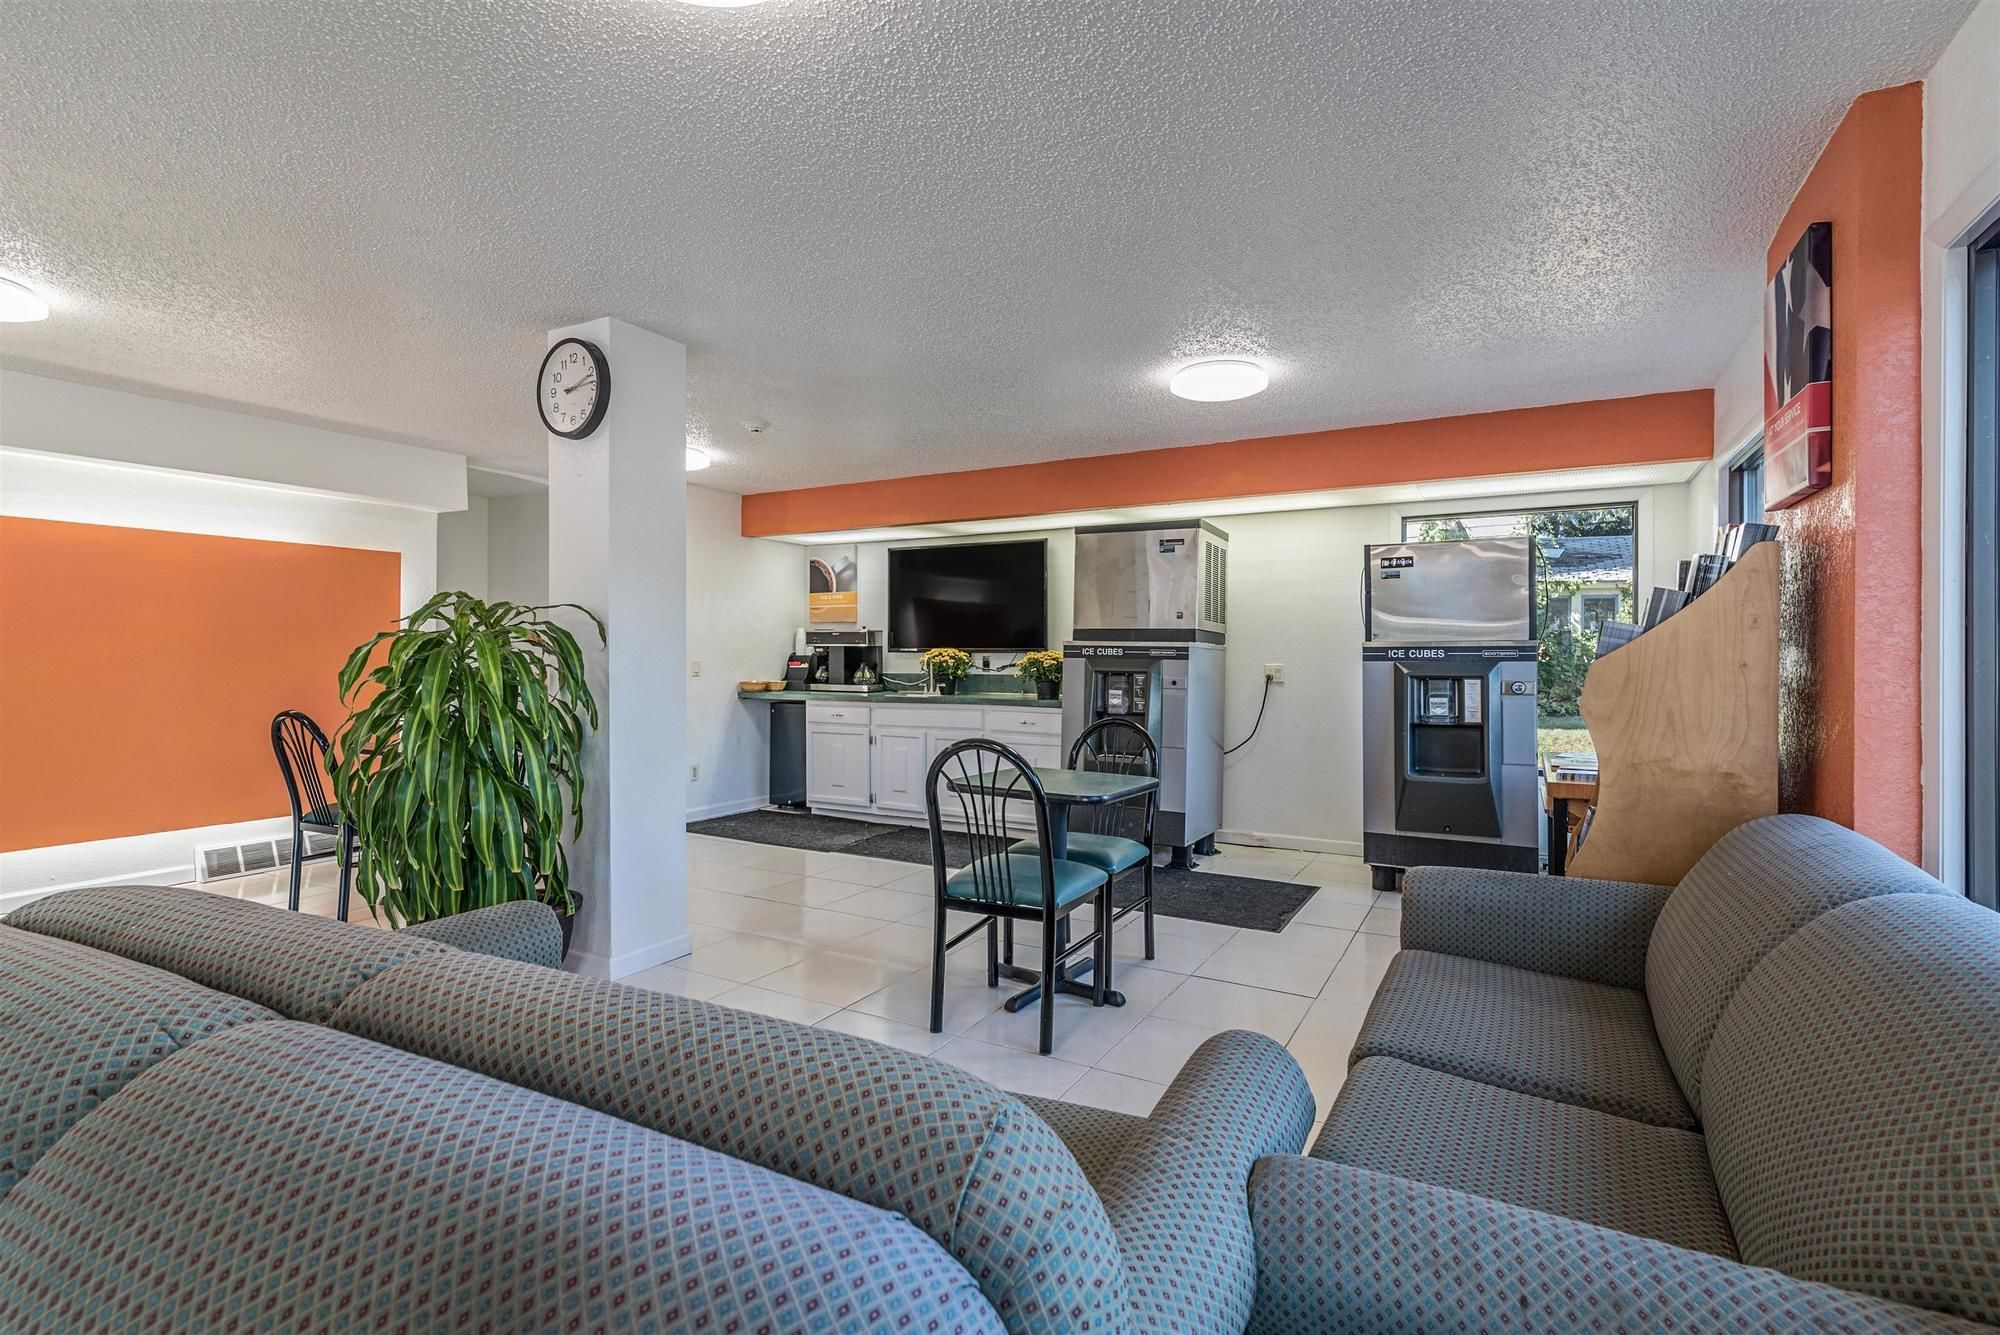 albany hotel coupons for albany new york freehotelcoupons com